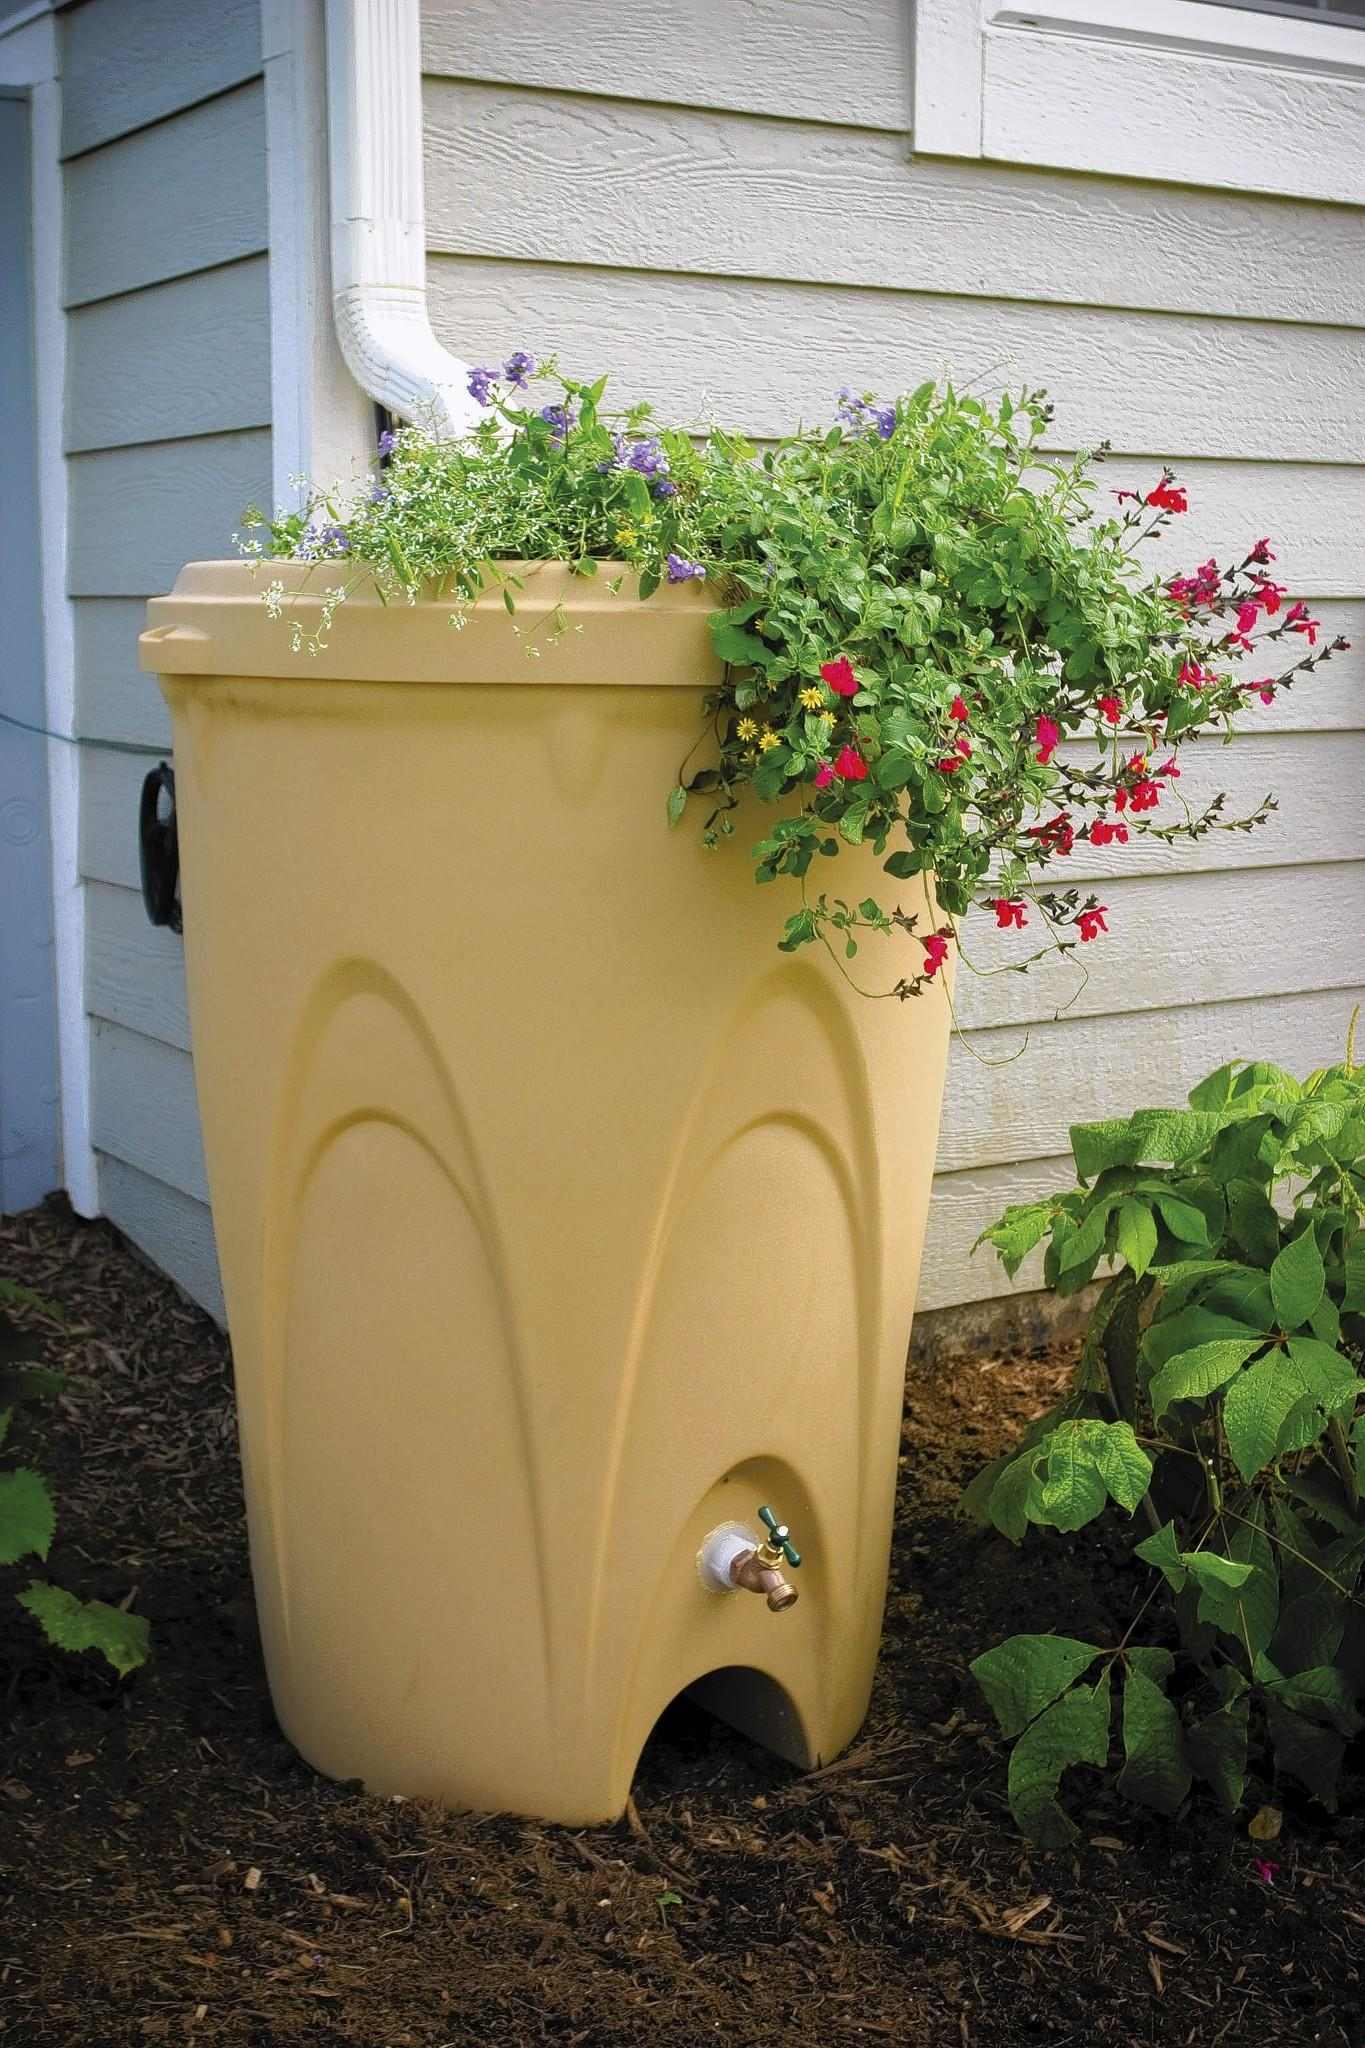 Two workshops in April will cover conserving water by installing a rain barrel.